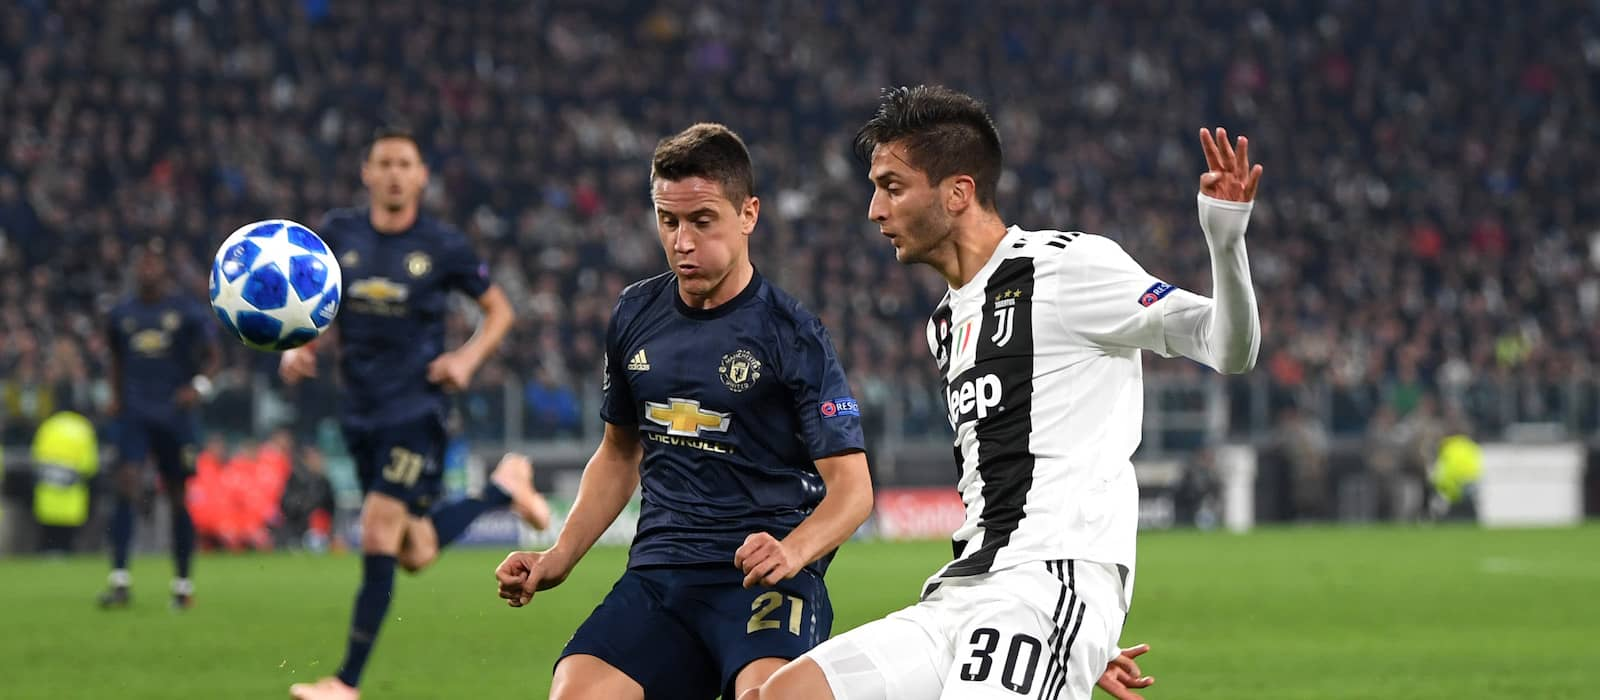 Stats weigh heavily in Ander Herrera's favour after Juventus showing